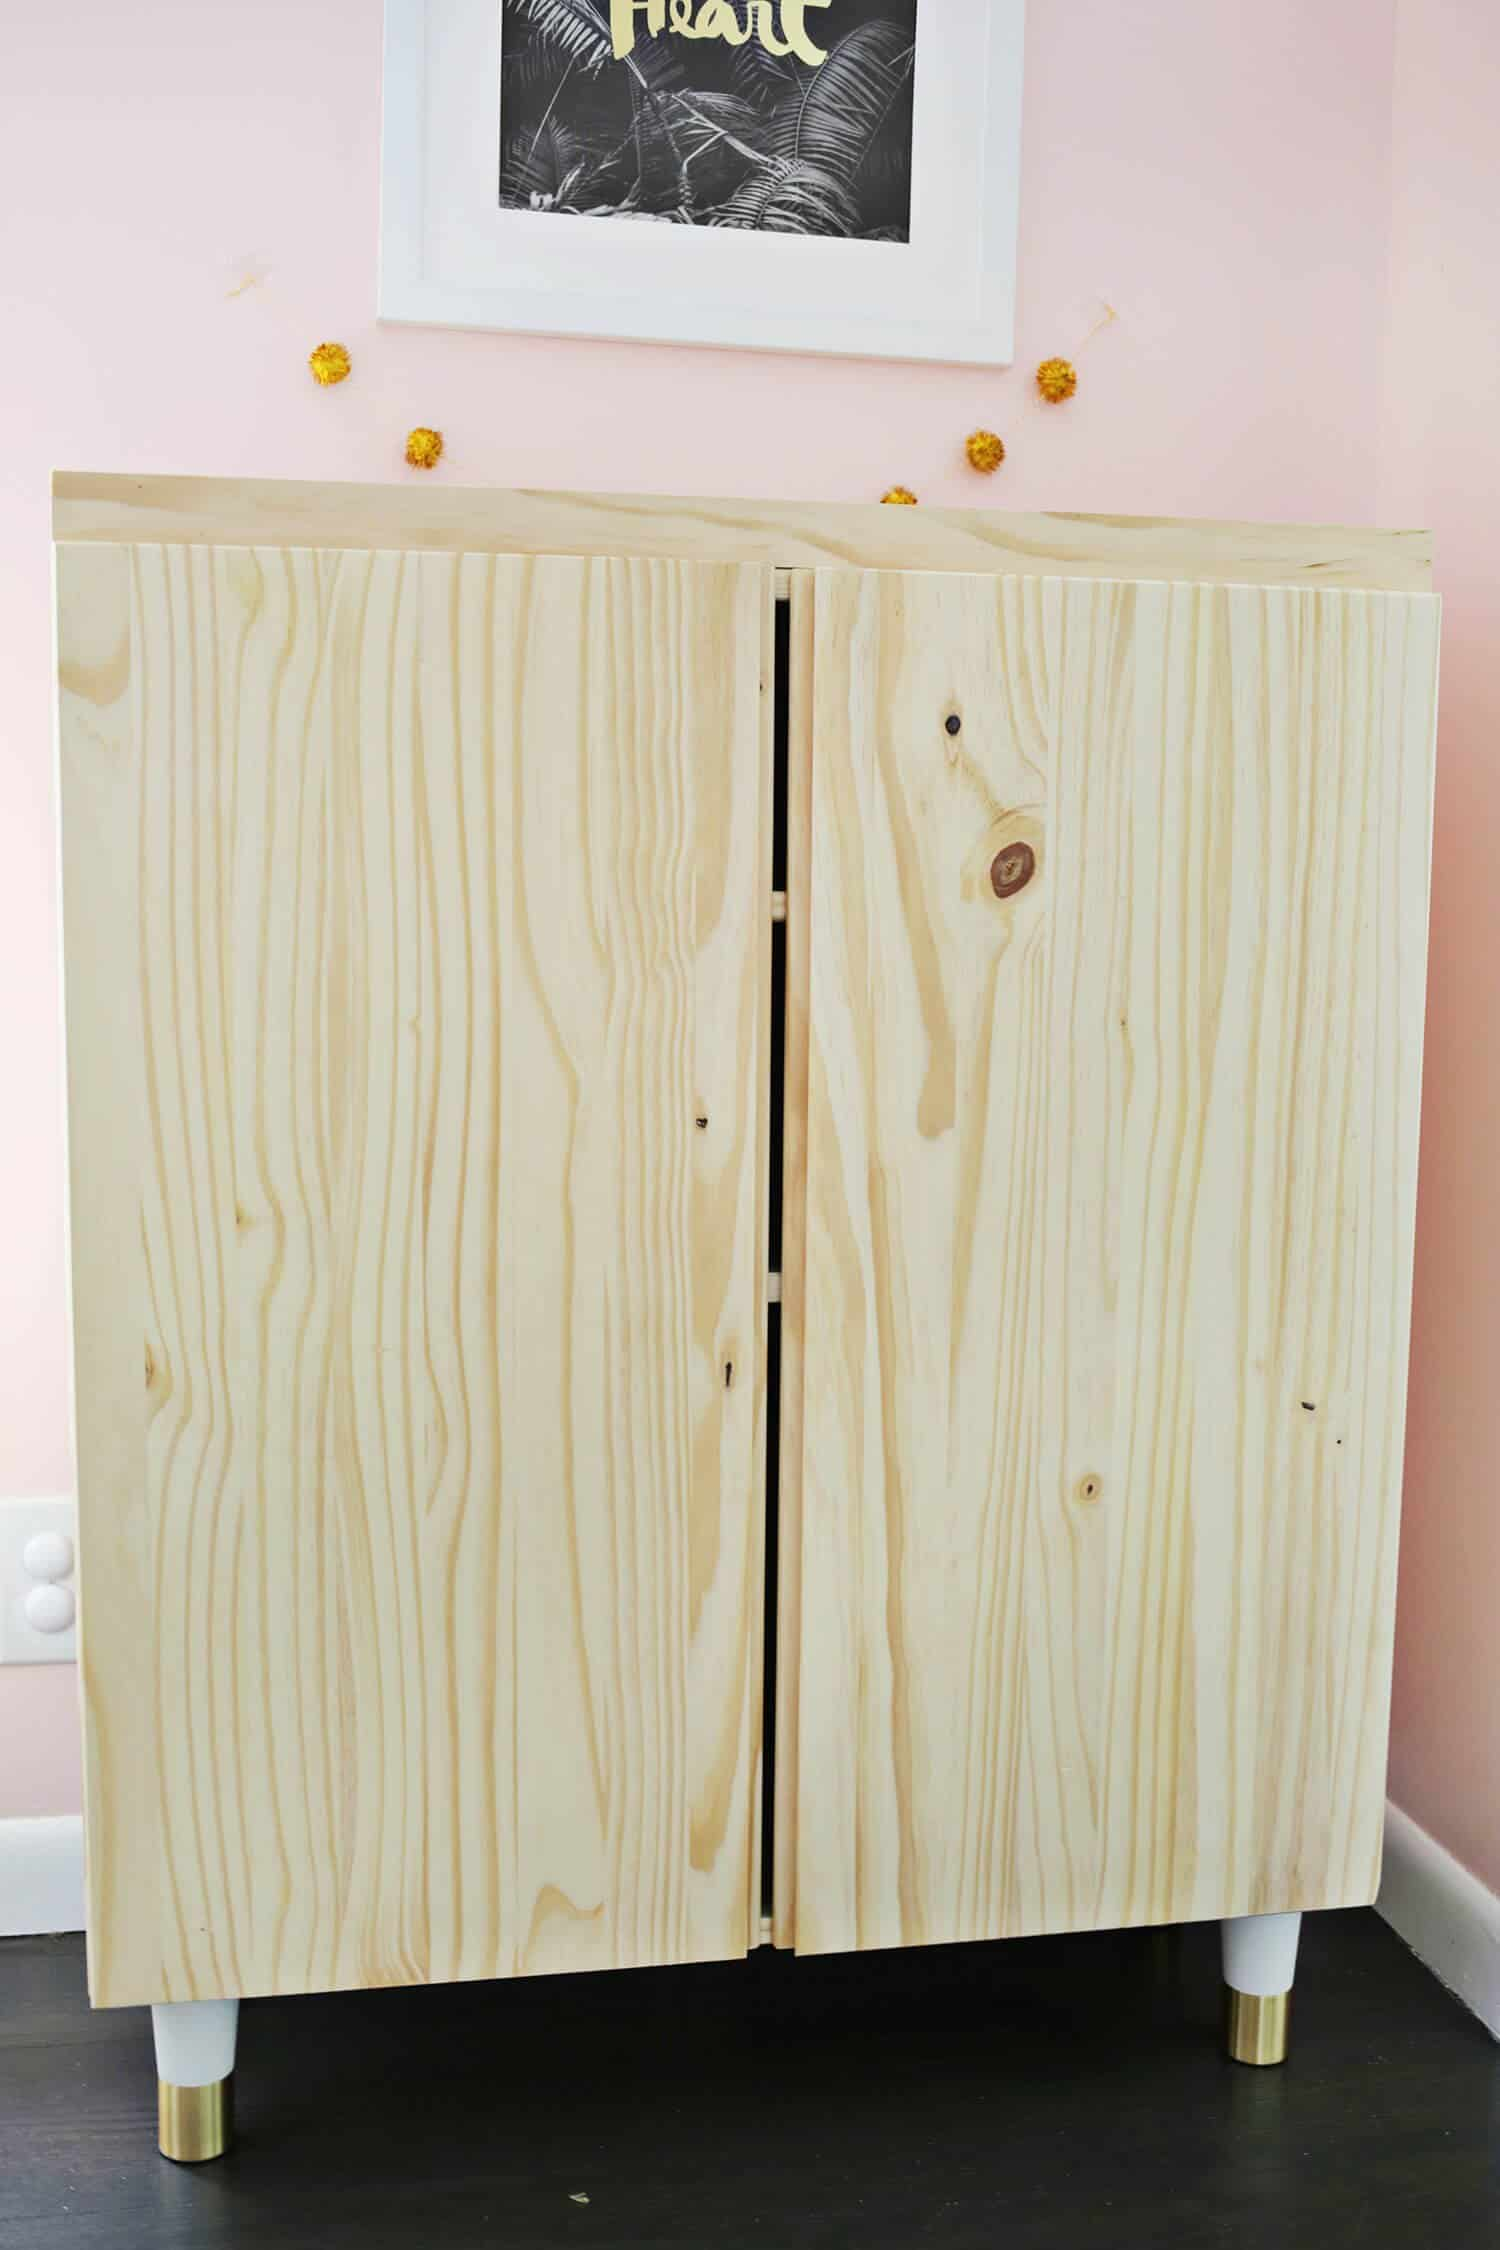 Ikea IVAR Cabinet Hack (Turned Into A Bar Cabinet!) - A Beautiful Mess